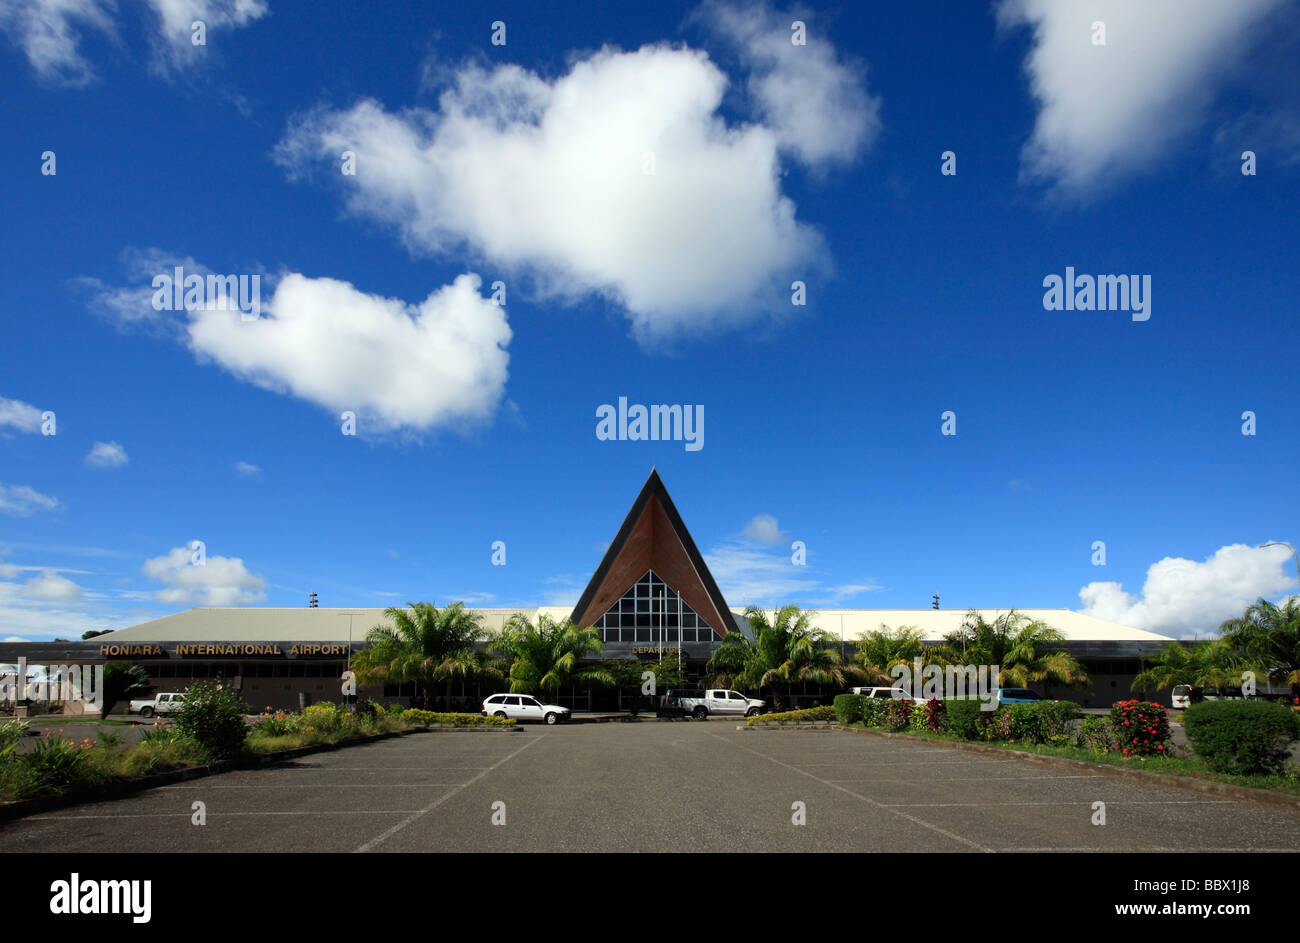 Honiara International Airport, known as Henderson Field, is located on the island of Guadalcanal Solomon Islands - Stock Image